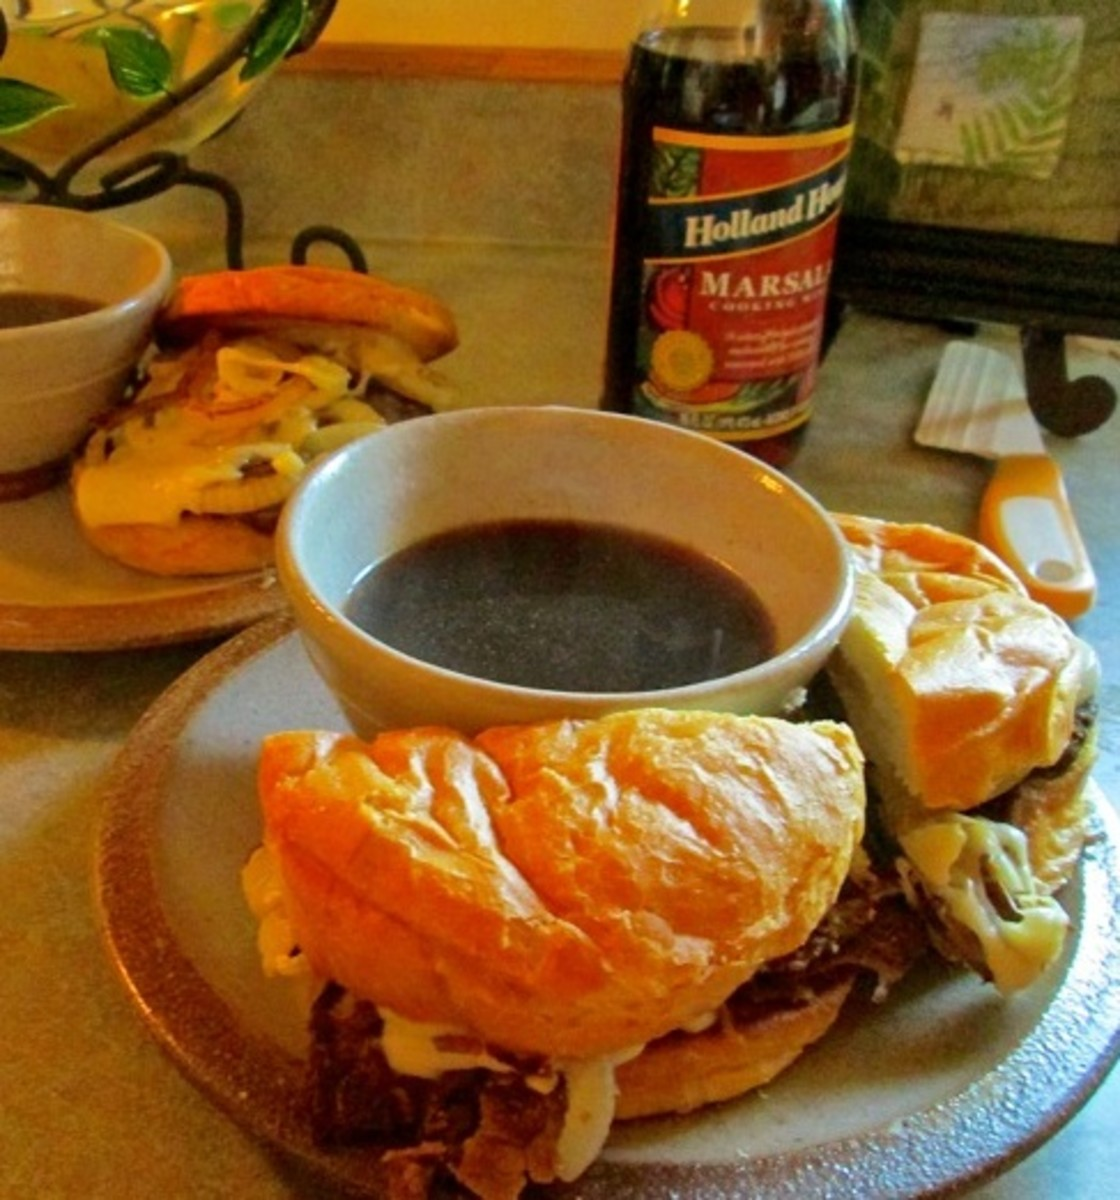 Quick Easy French Dips Recipe with Marsala Cooking Wine